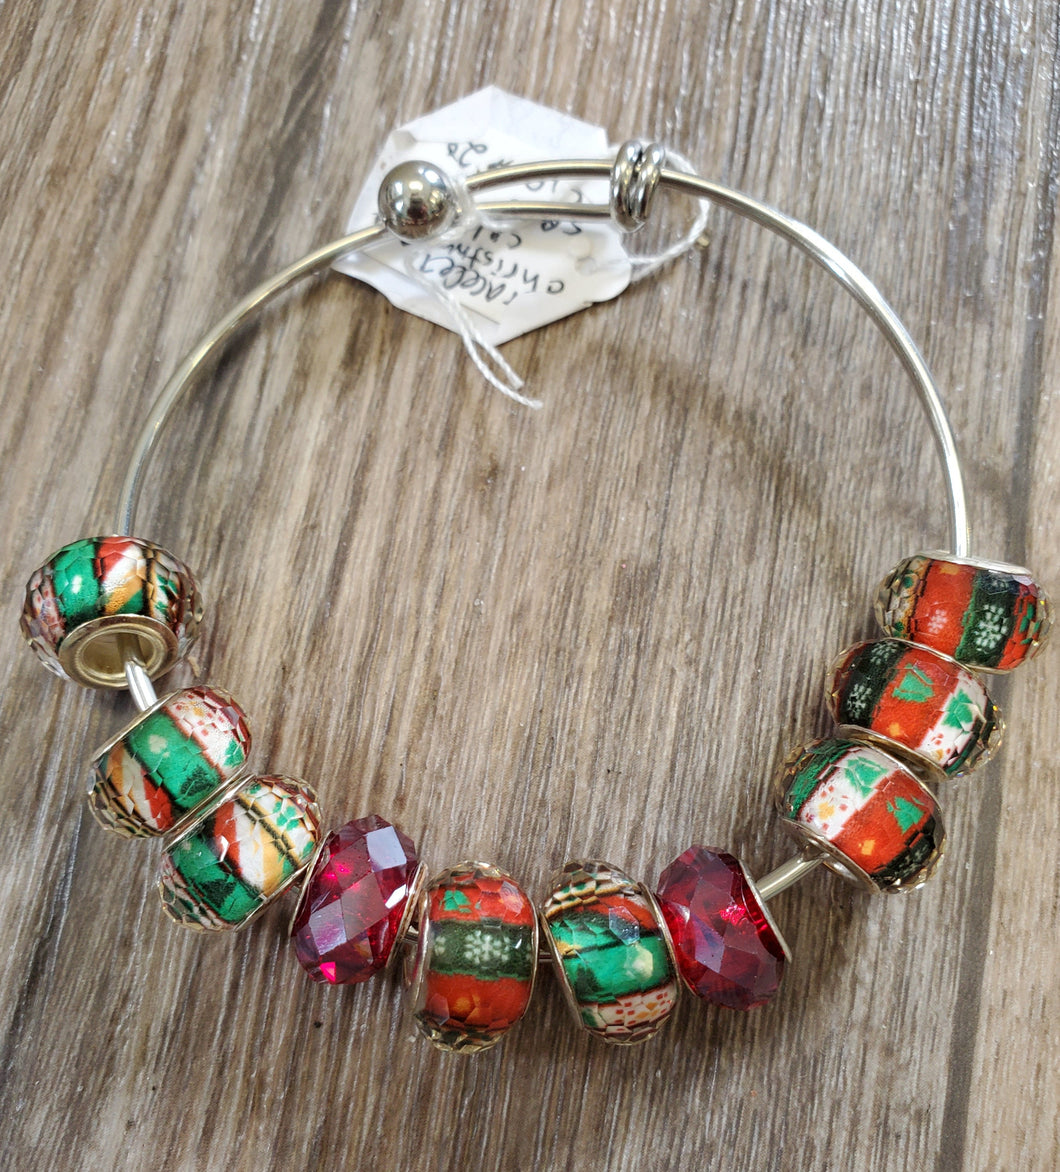 Bangle Bracelet w/Shades of Red and Green Beads